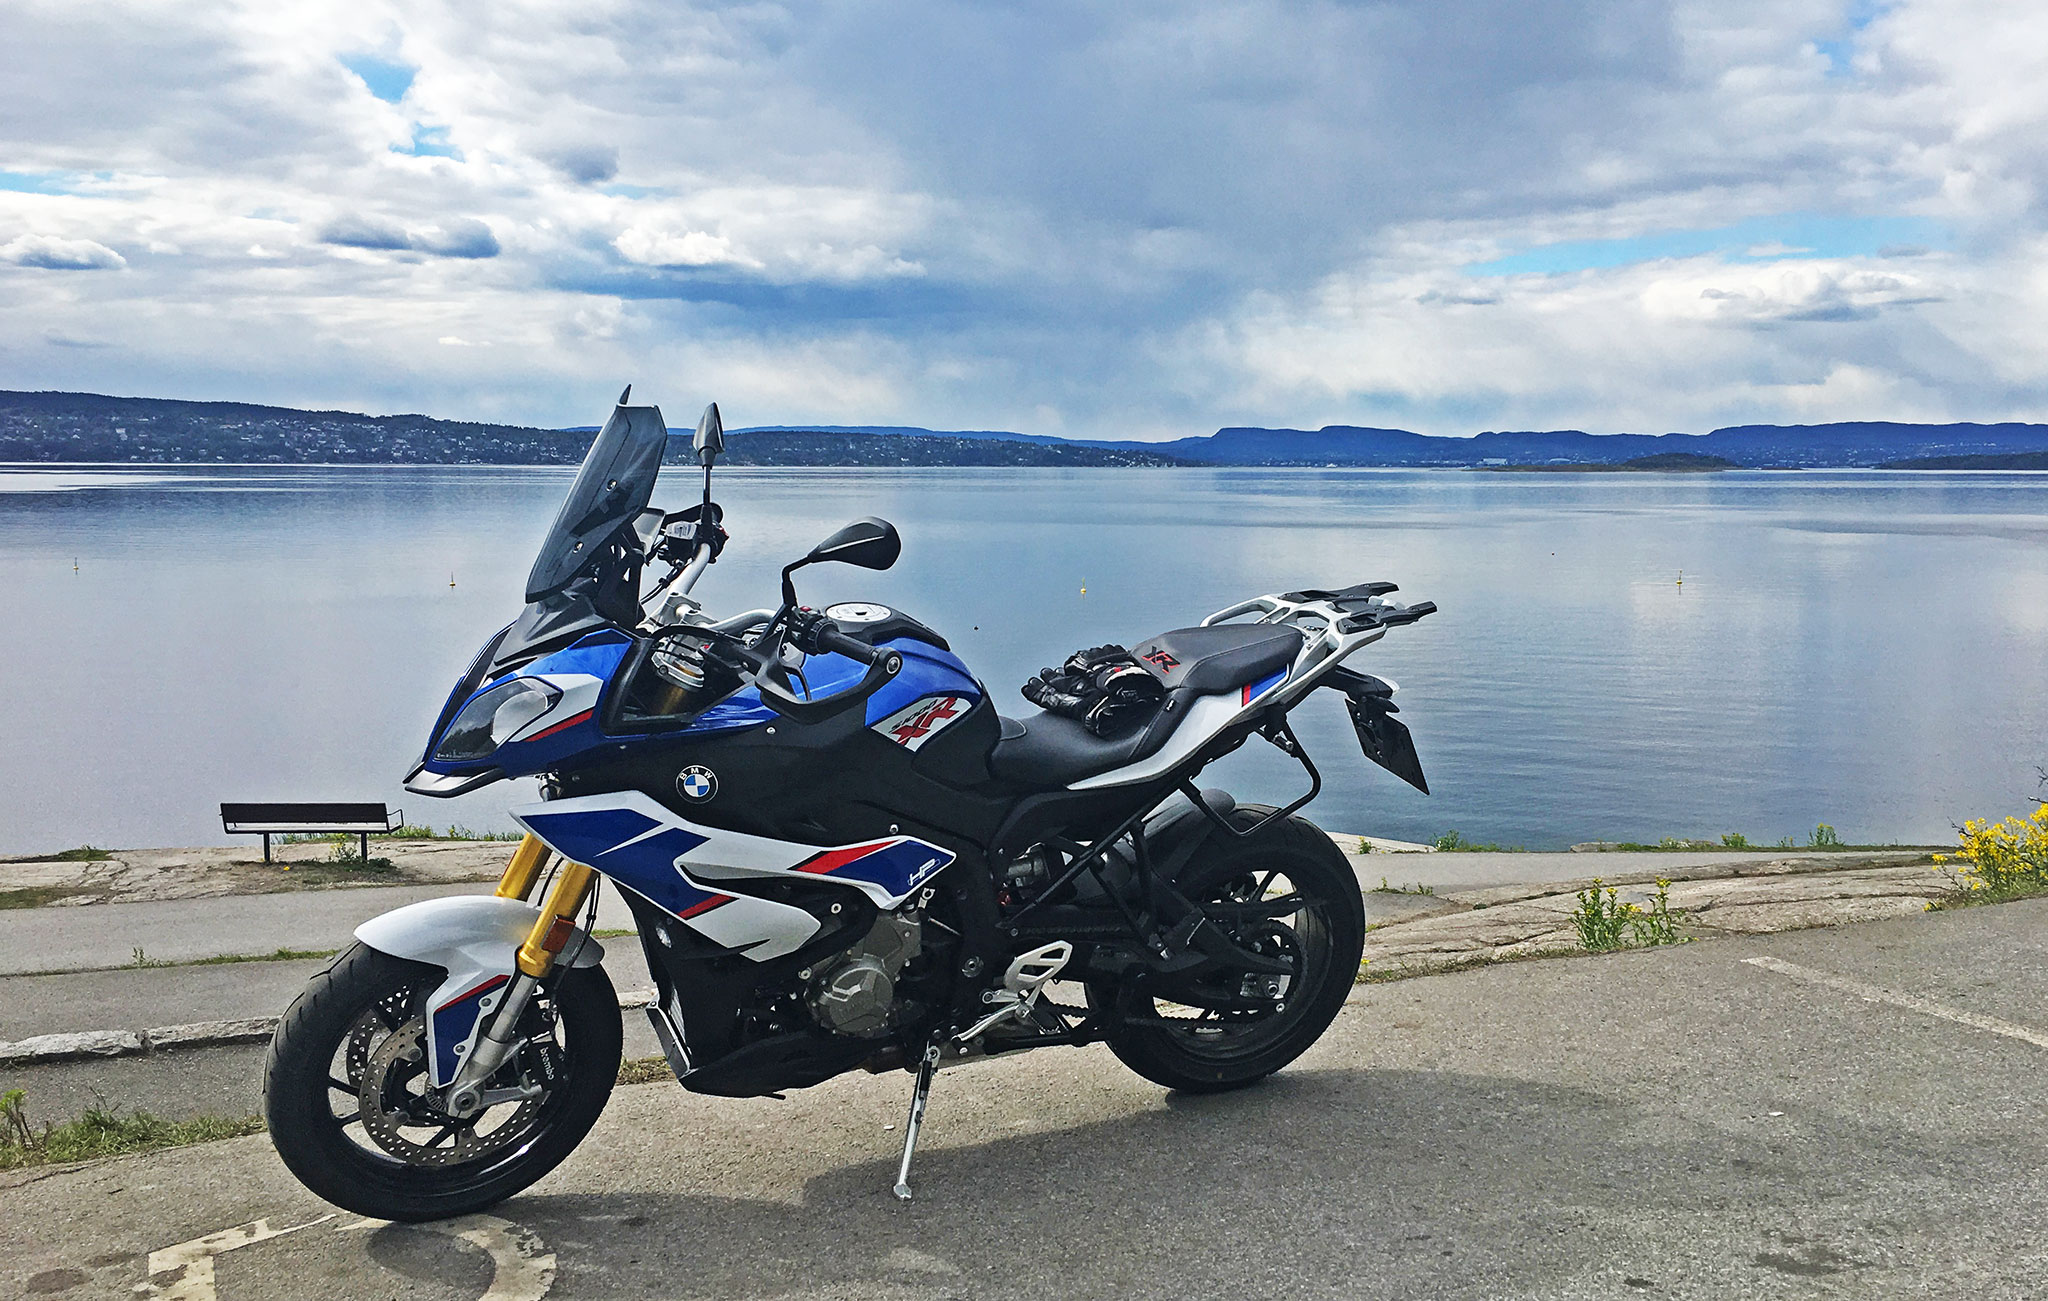 S1000XR by the Oslo fjord